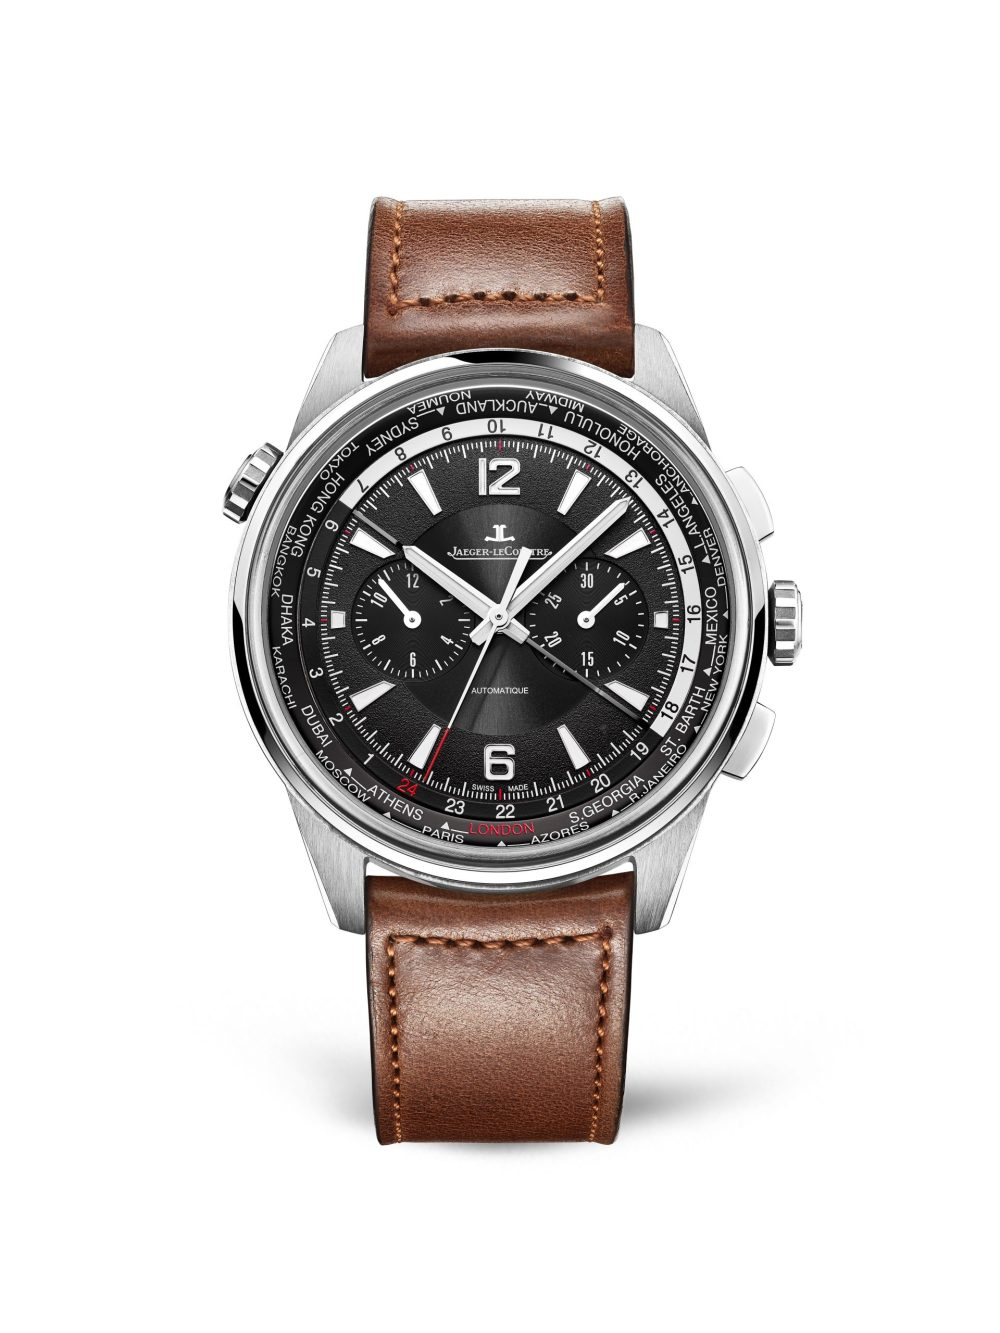 Jaeger-LeCoultre Polaris Chronograph World Time